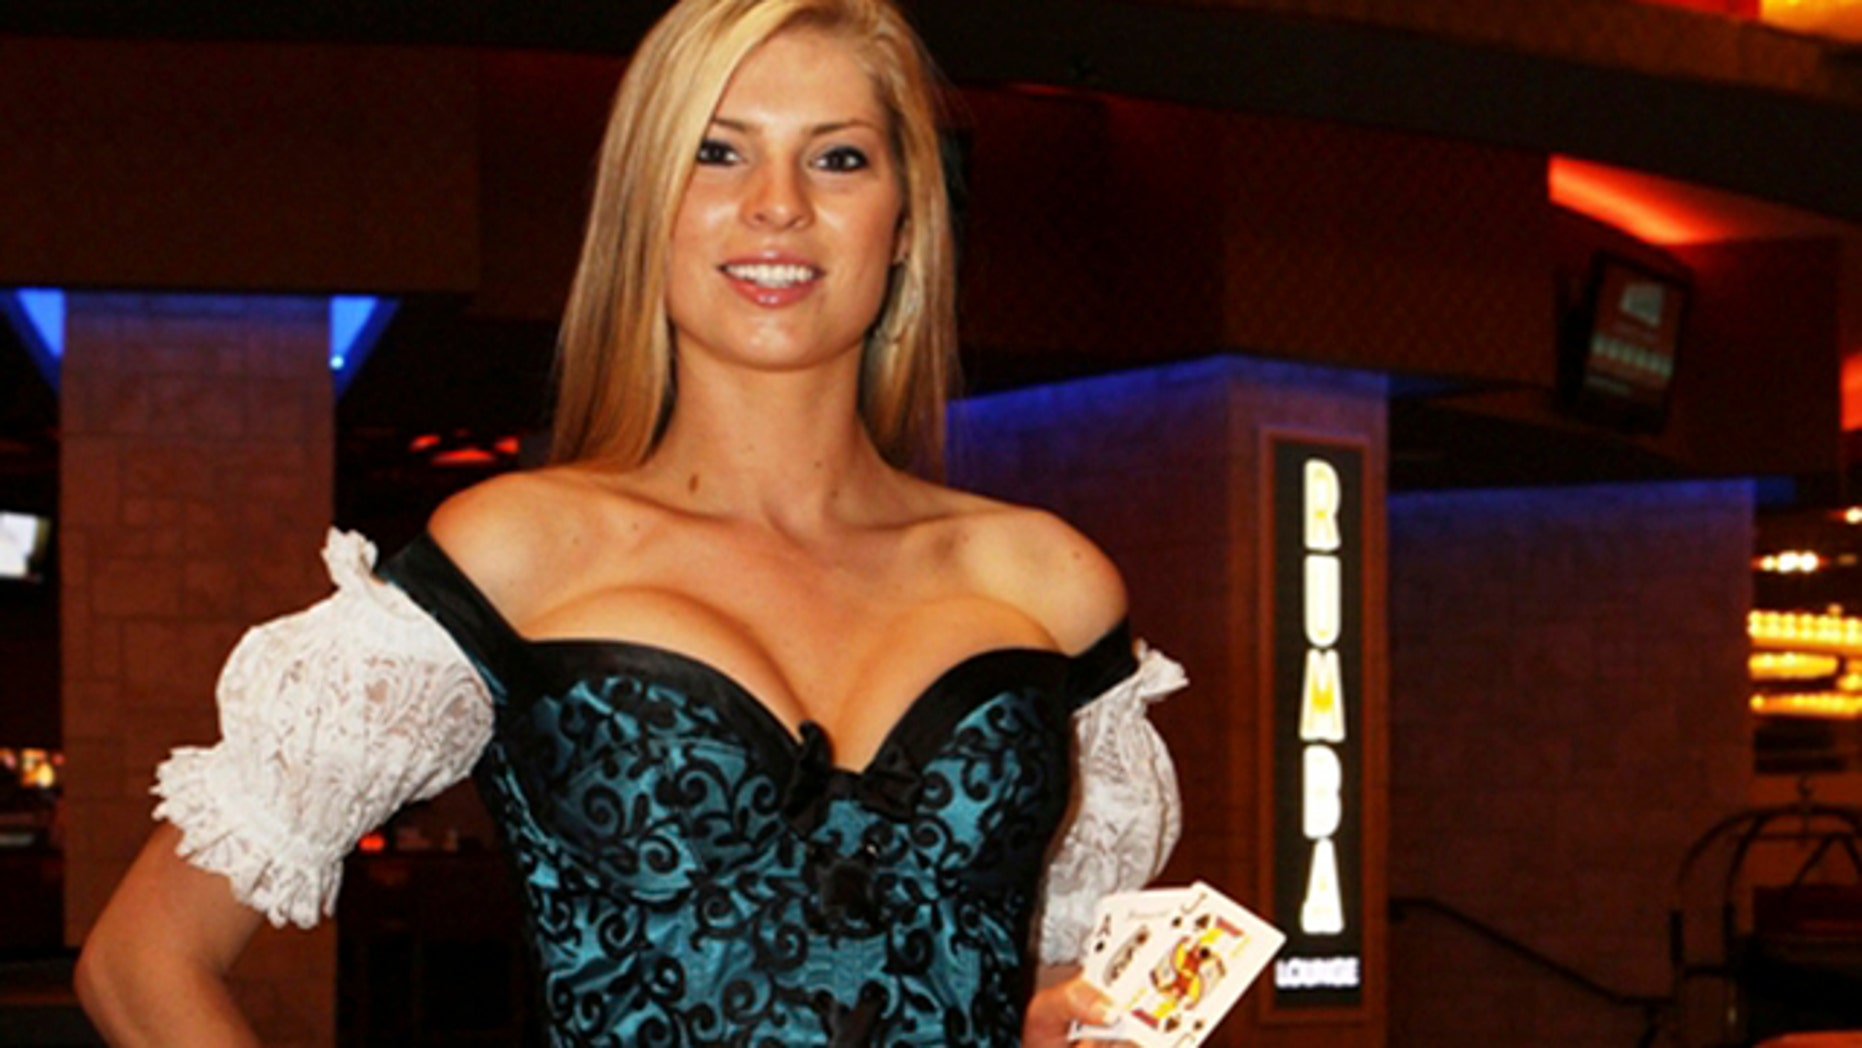 """In this photo released by Tropicana Casino and Resort Atlantic City, Monday, June 6, 2011, a model wears one of the new costumes that some female dealers will wear in a new """"party pit"""" to open at the Tropicana Casino and Resort beginning the weekend of July 4. The new costumes are part of a trend among casinos in the nation's second-largest gambling market to dress employees in sexy costumes as the competition for gambling dollars grows ever fiercer. (AP Photo/Tropicana Casino and Resort Atlantic City)"""